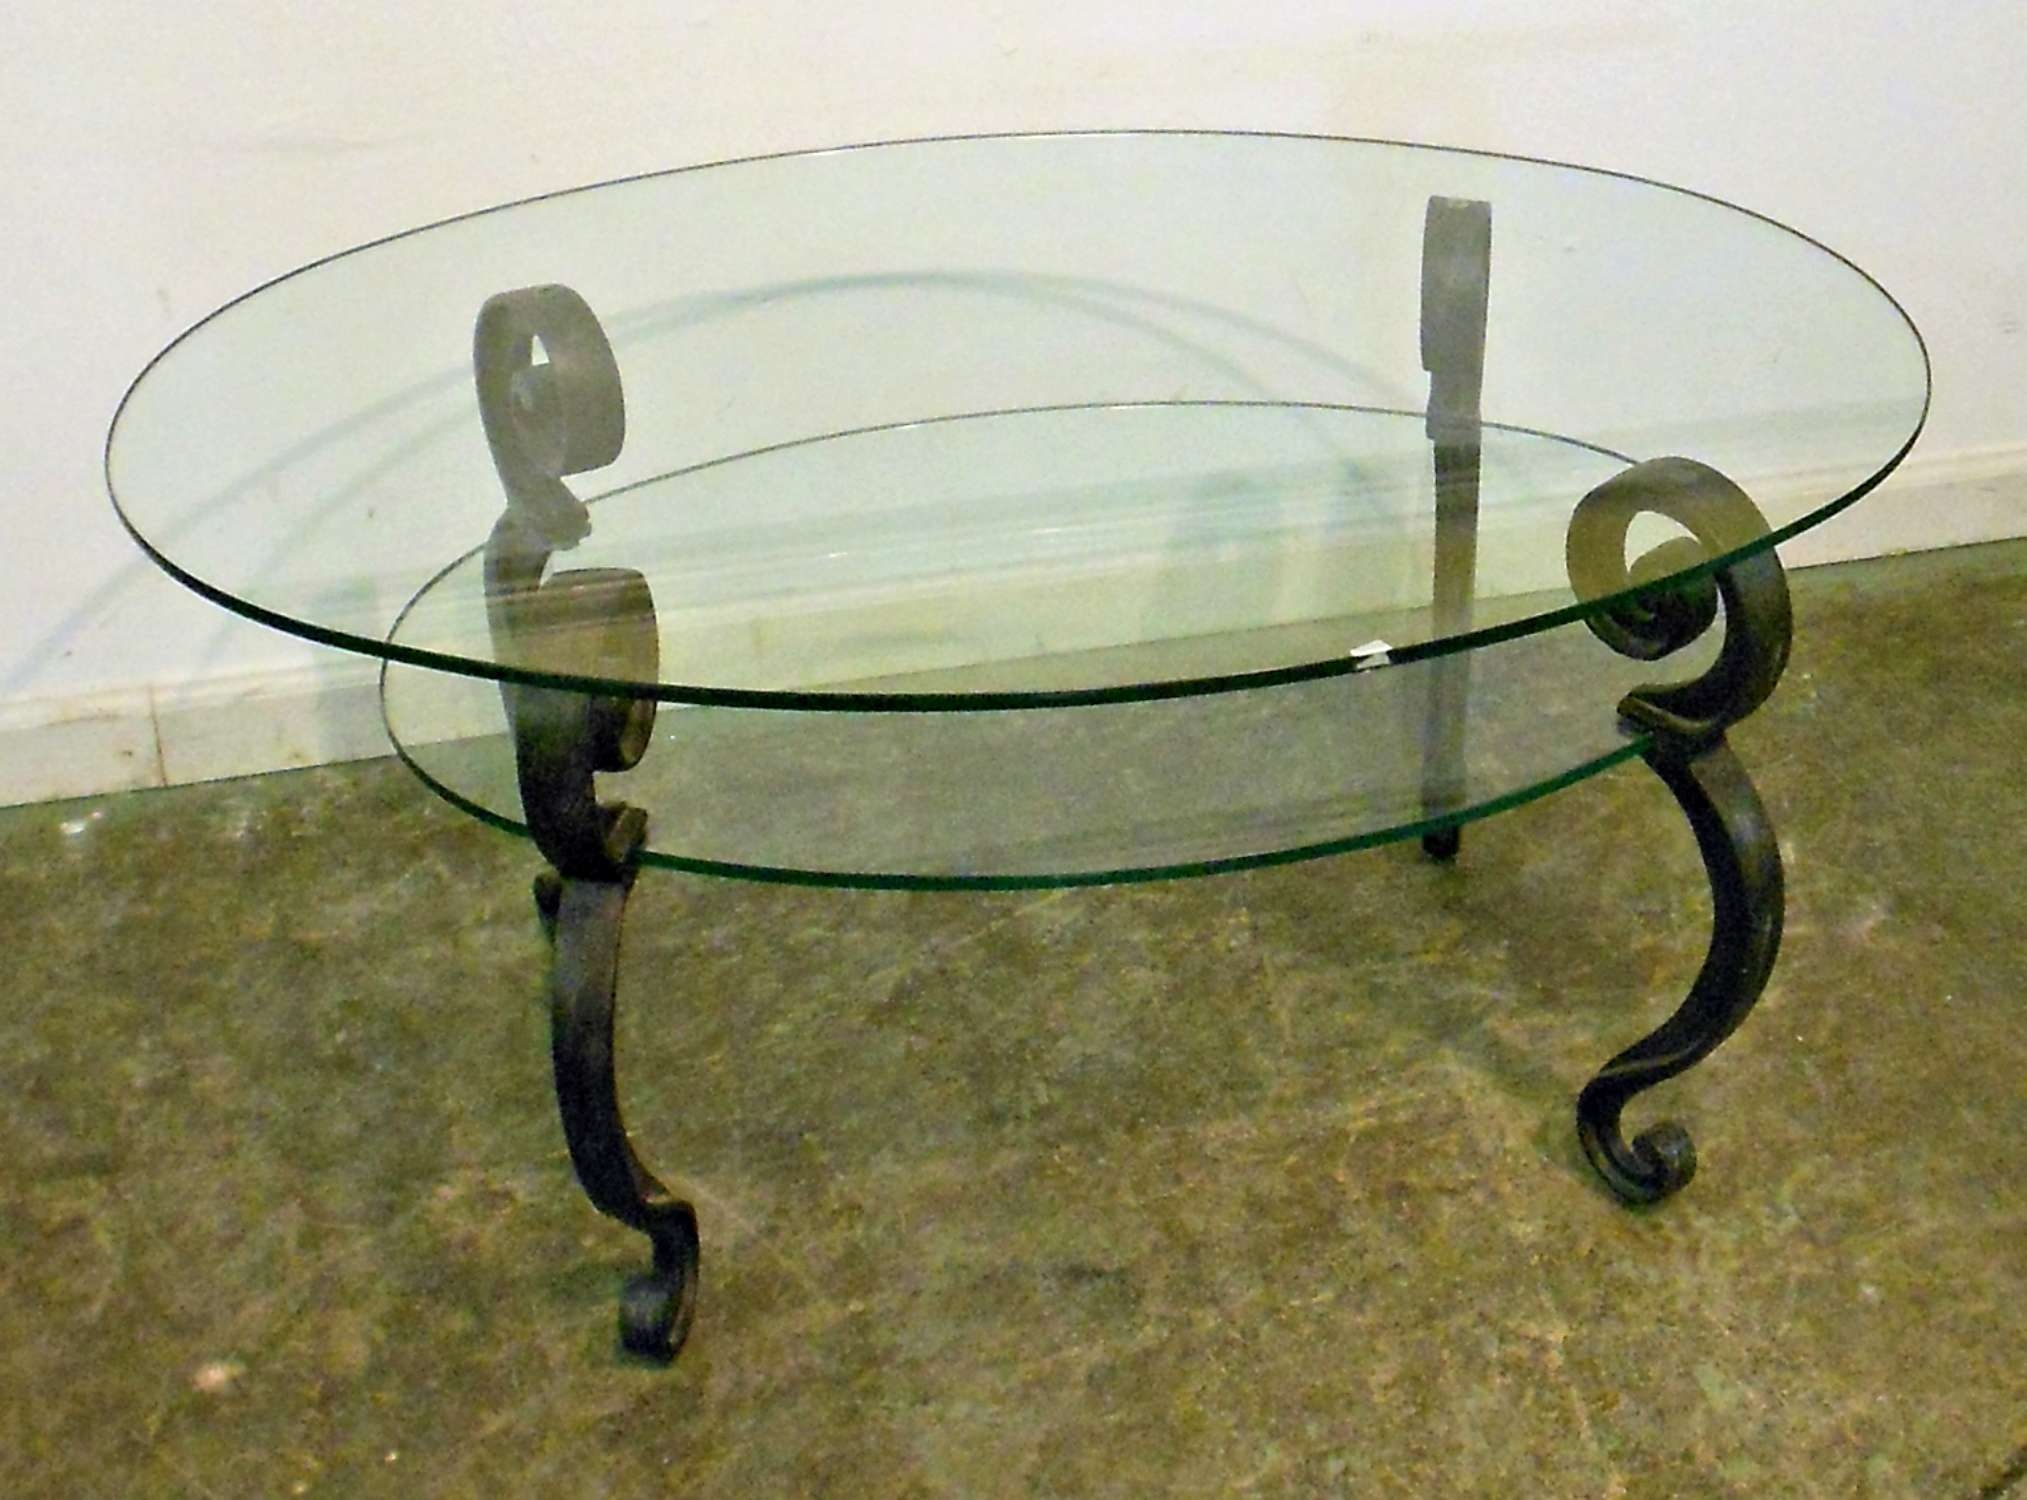 Vintage Glass Top Coffee Table With Black Metal Legs And Shelves Regarding Most Current Antique Glass Coffee Tables (View 16 of 20)